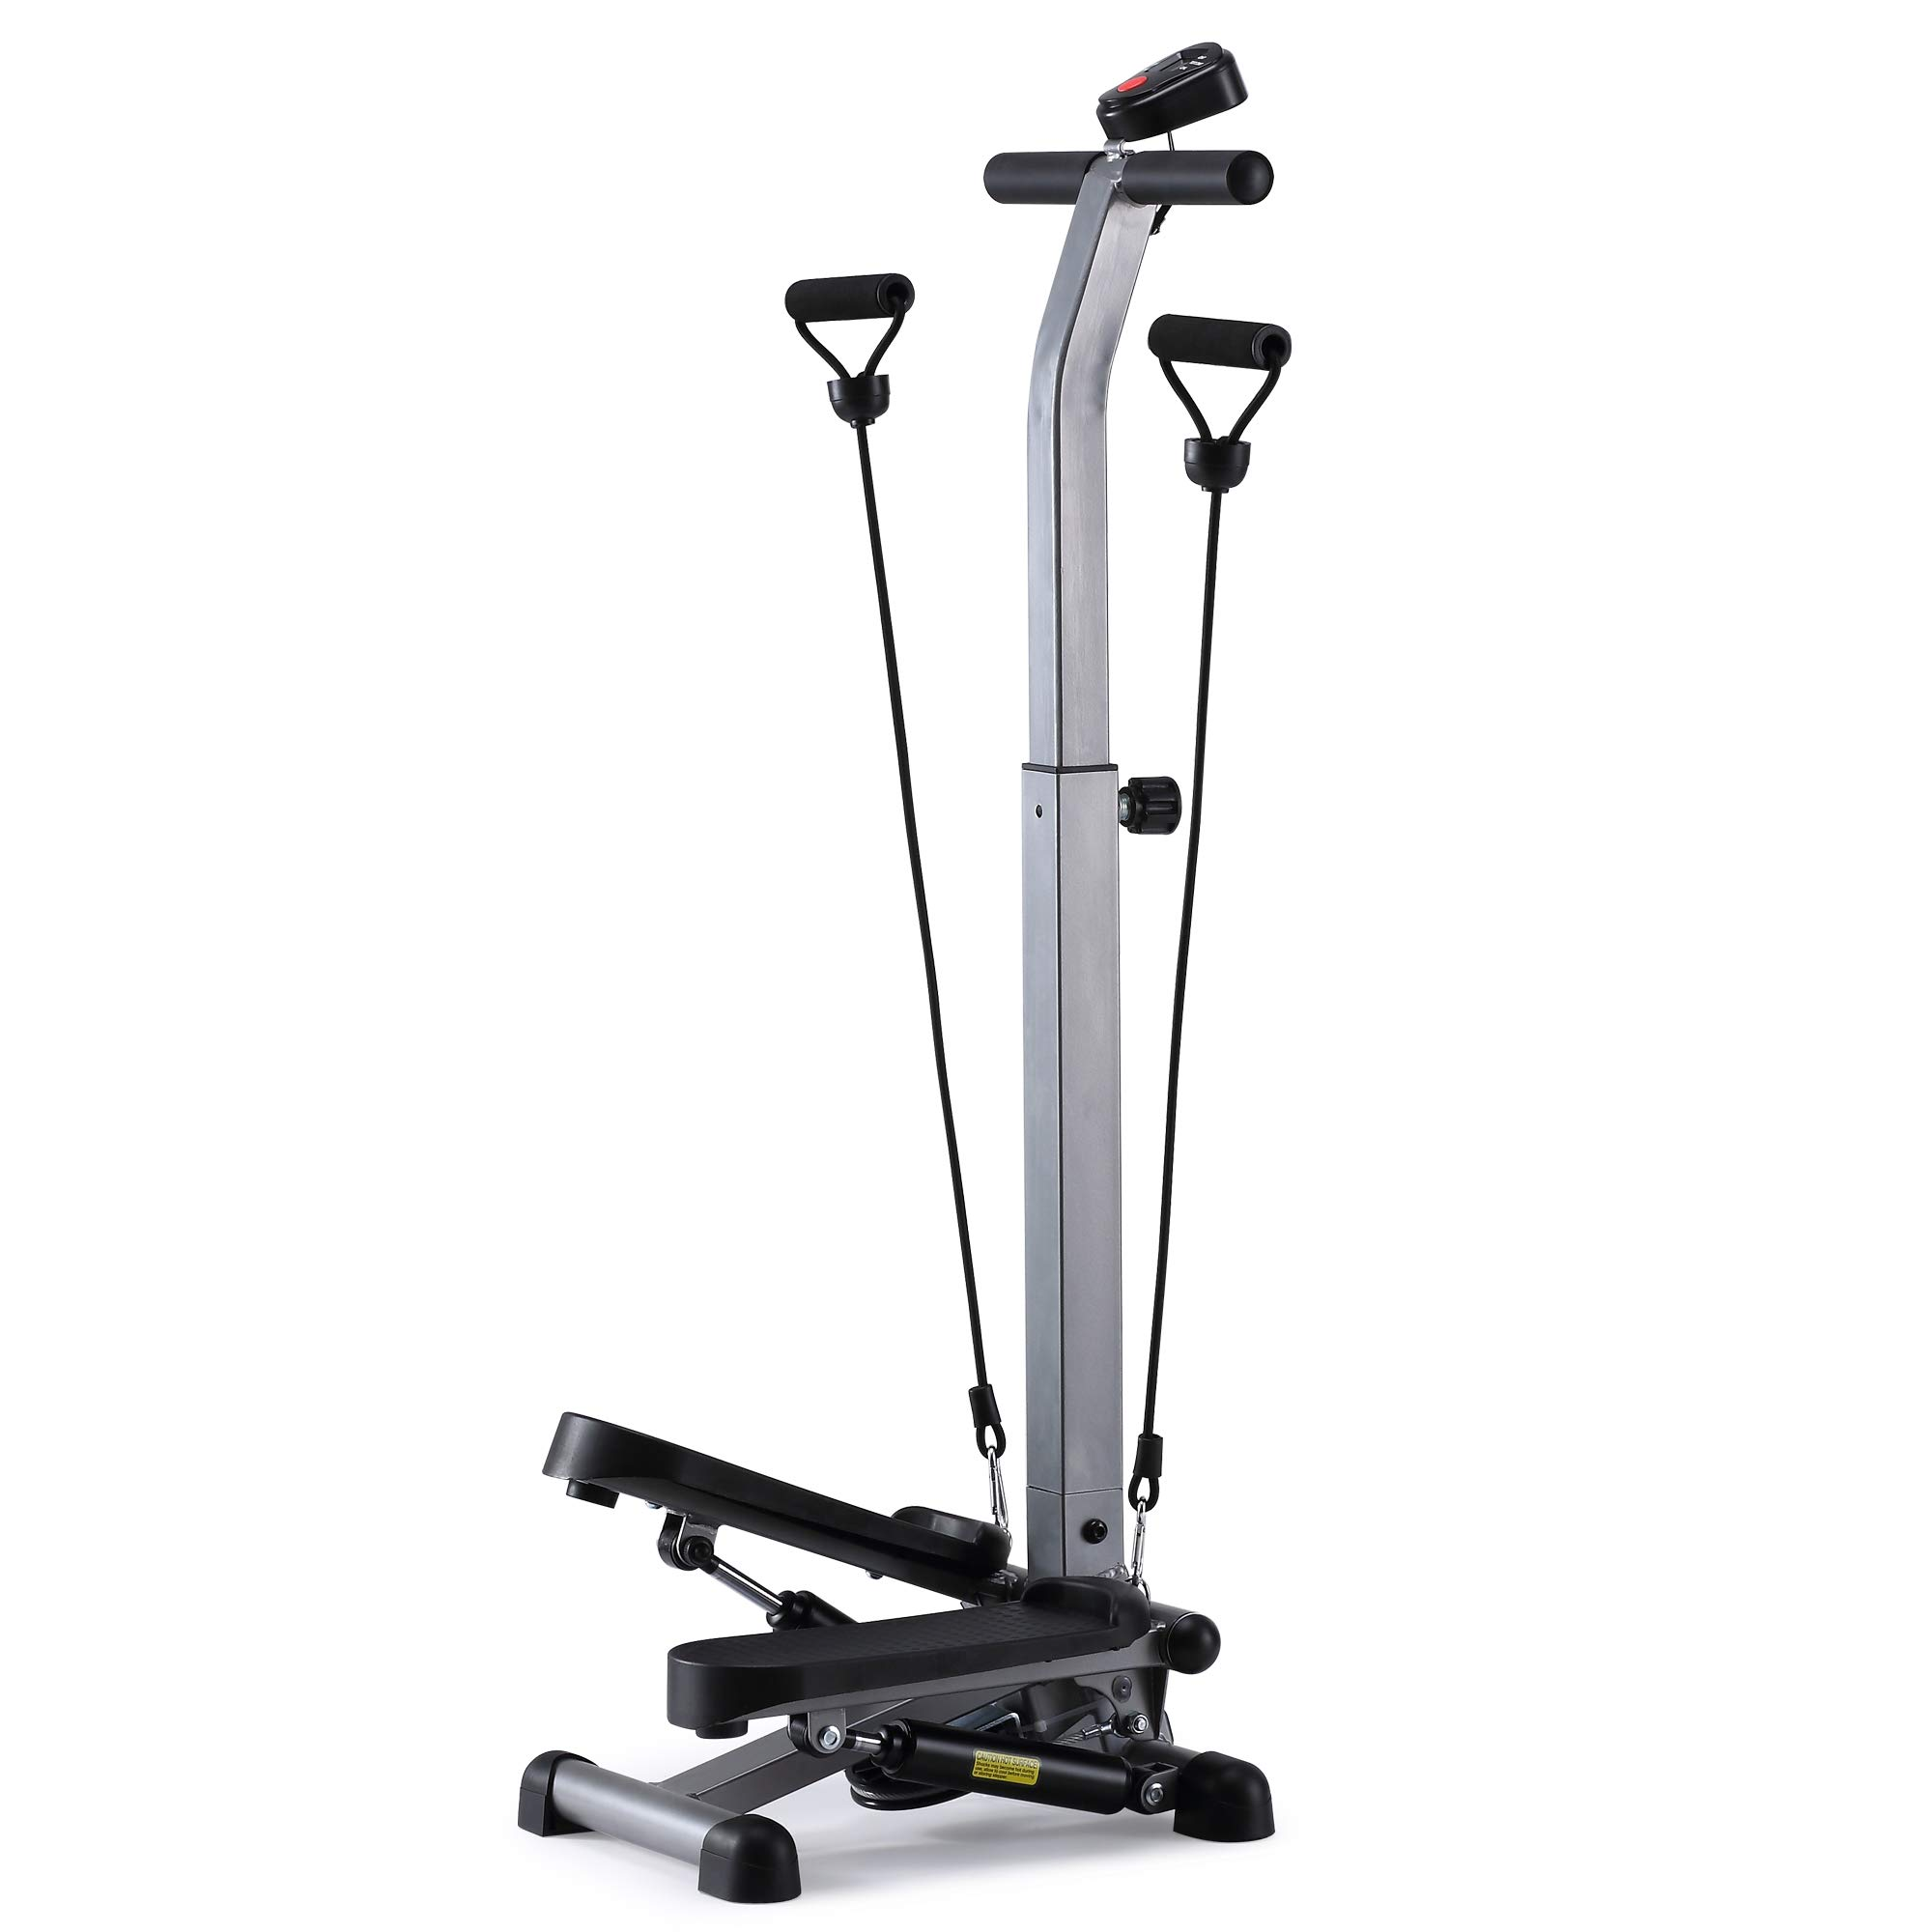 ECHANFIT Step Machine Stepper with Handlebar for Balance Arm Training Resistance Bands and Electronic Monitor for Home Workout and Cardio Fitness